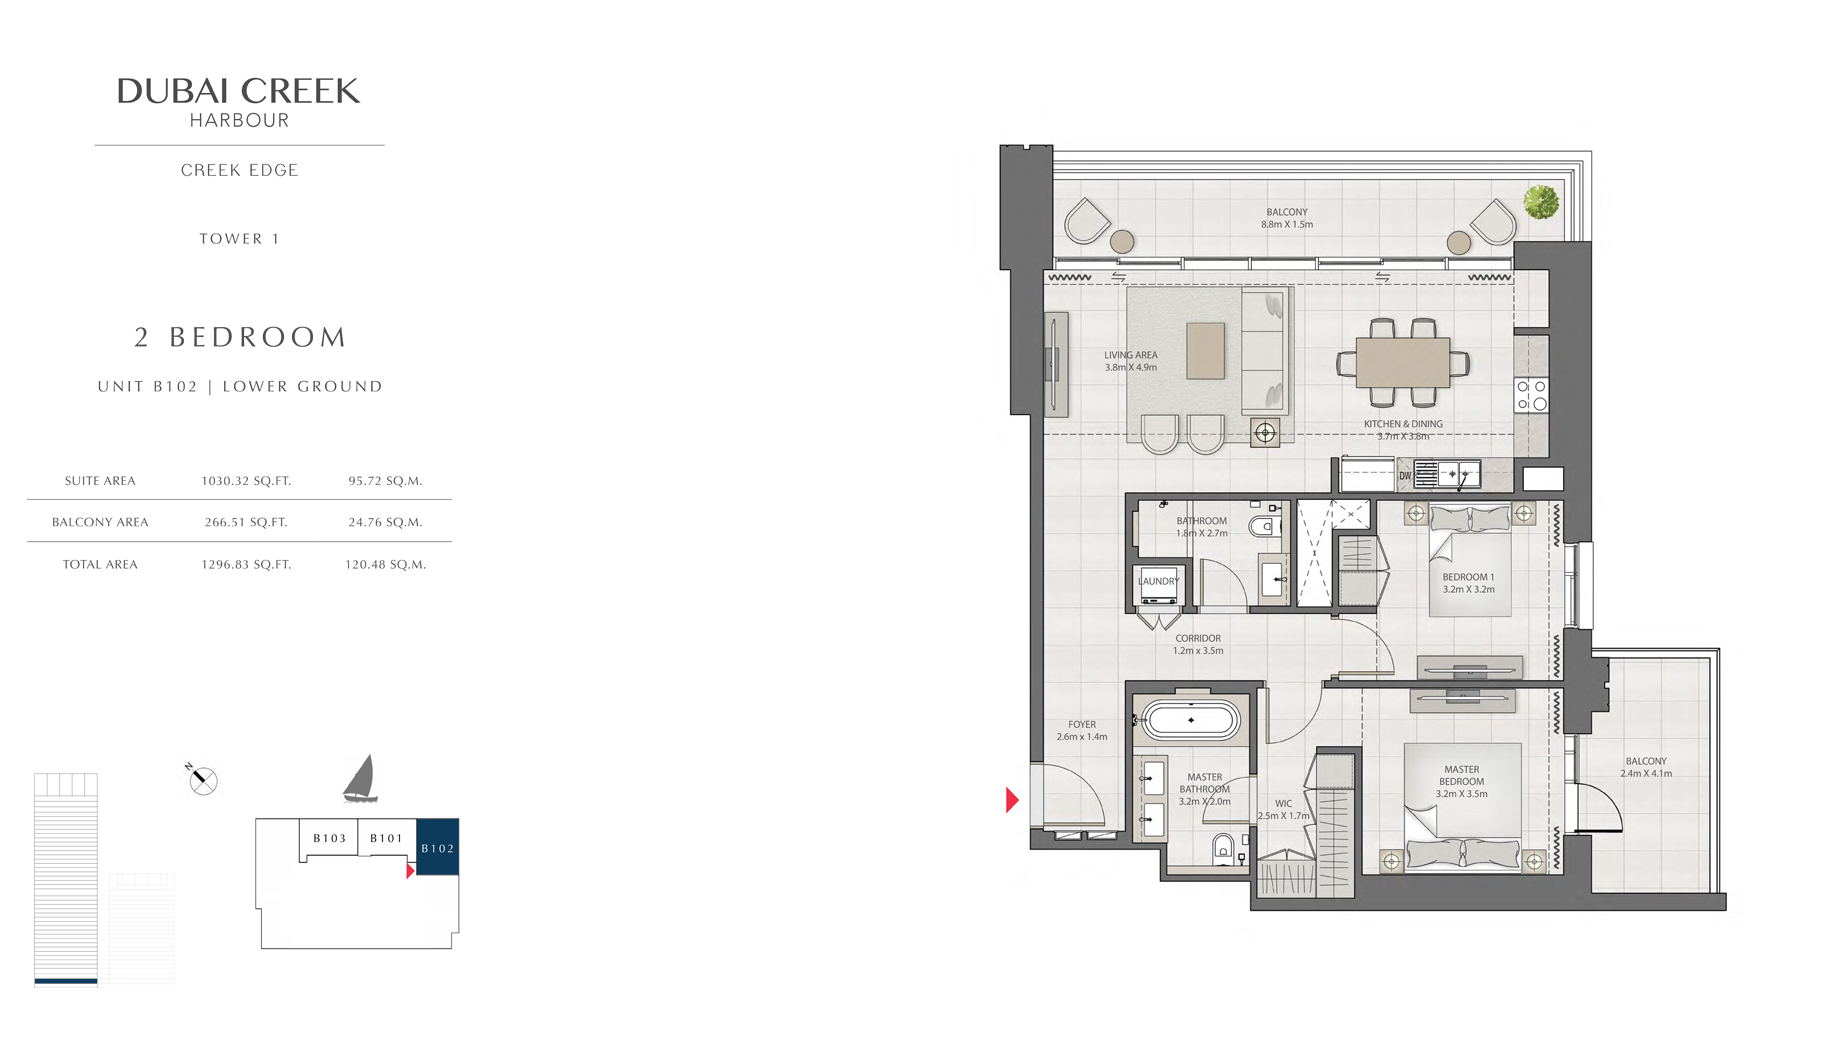 2 Bedroom Tower 1 Unit B102 Level G Size 1296 sq.ft